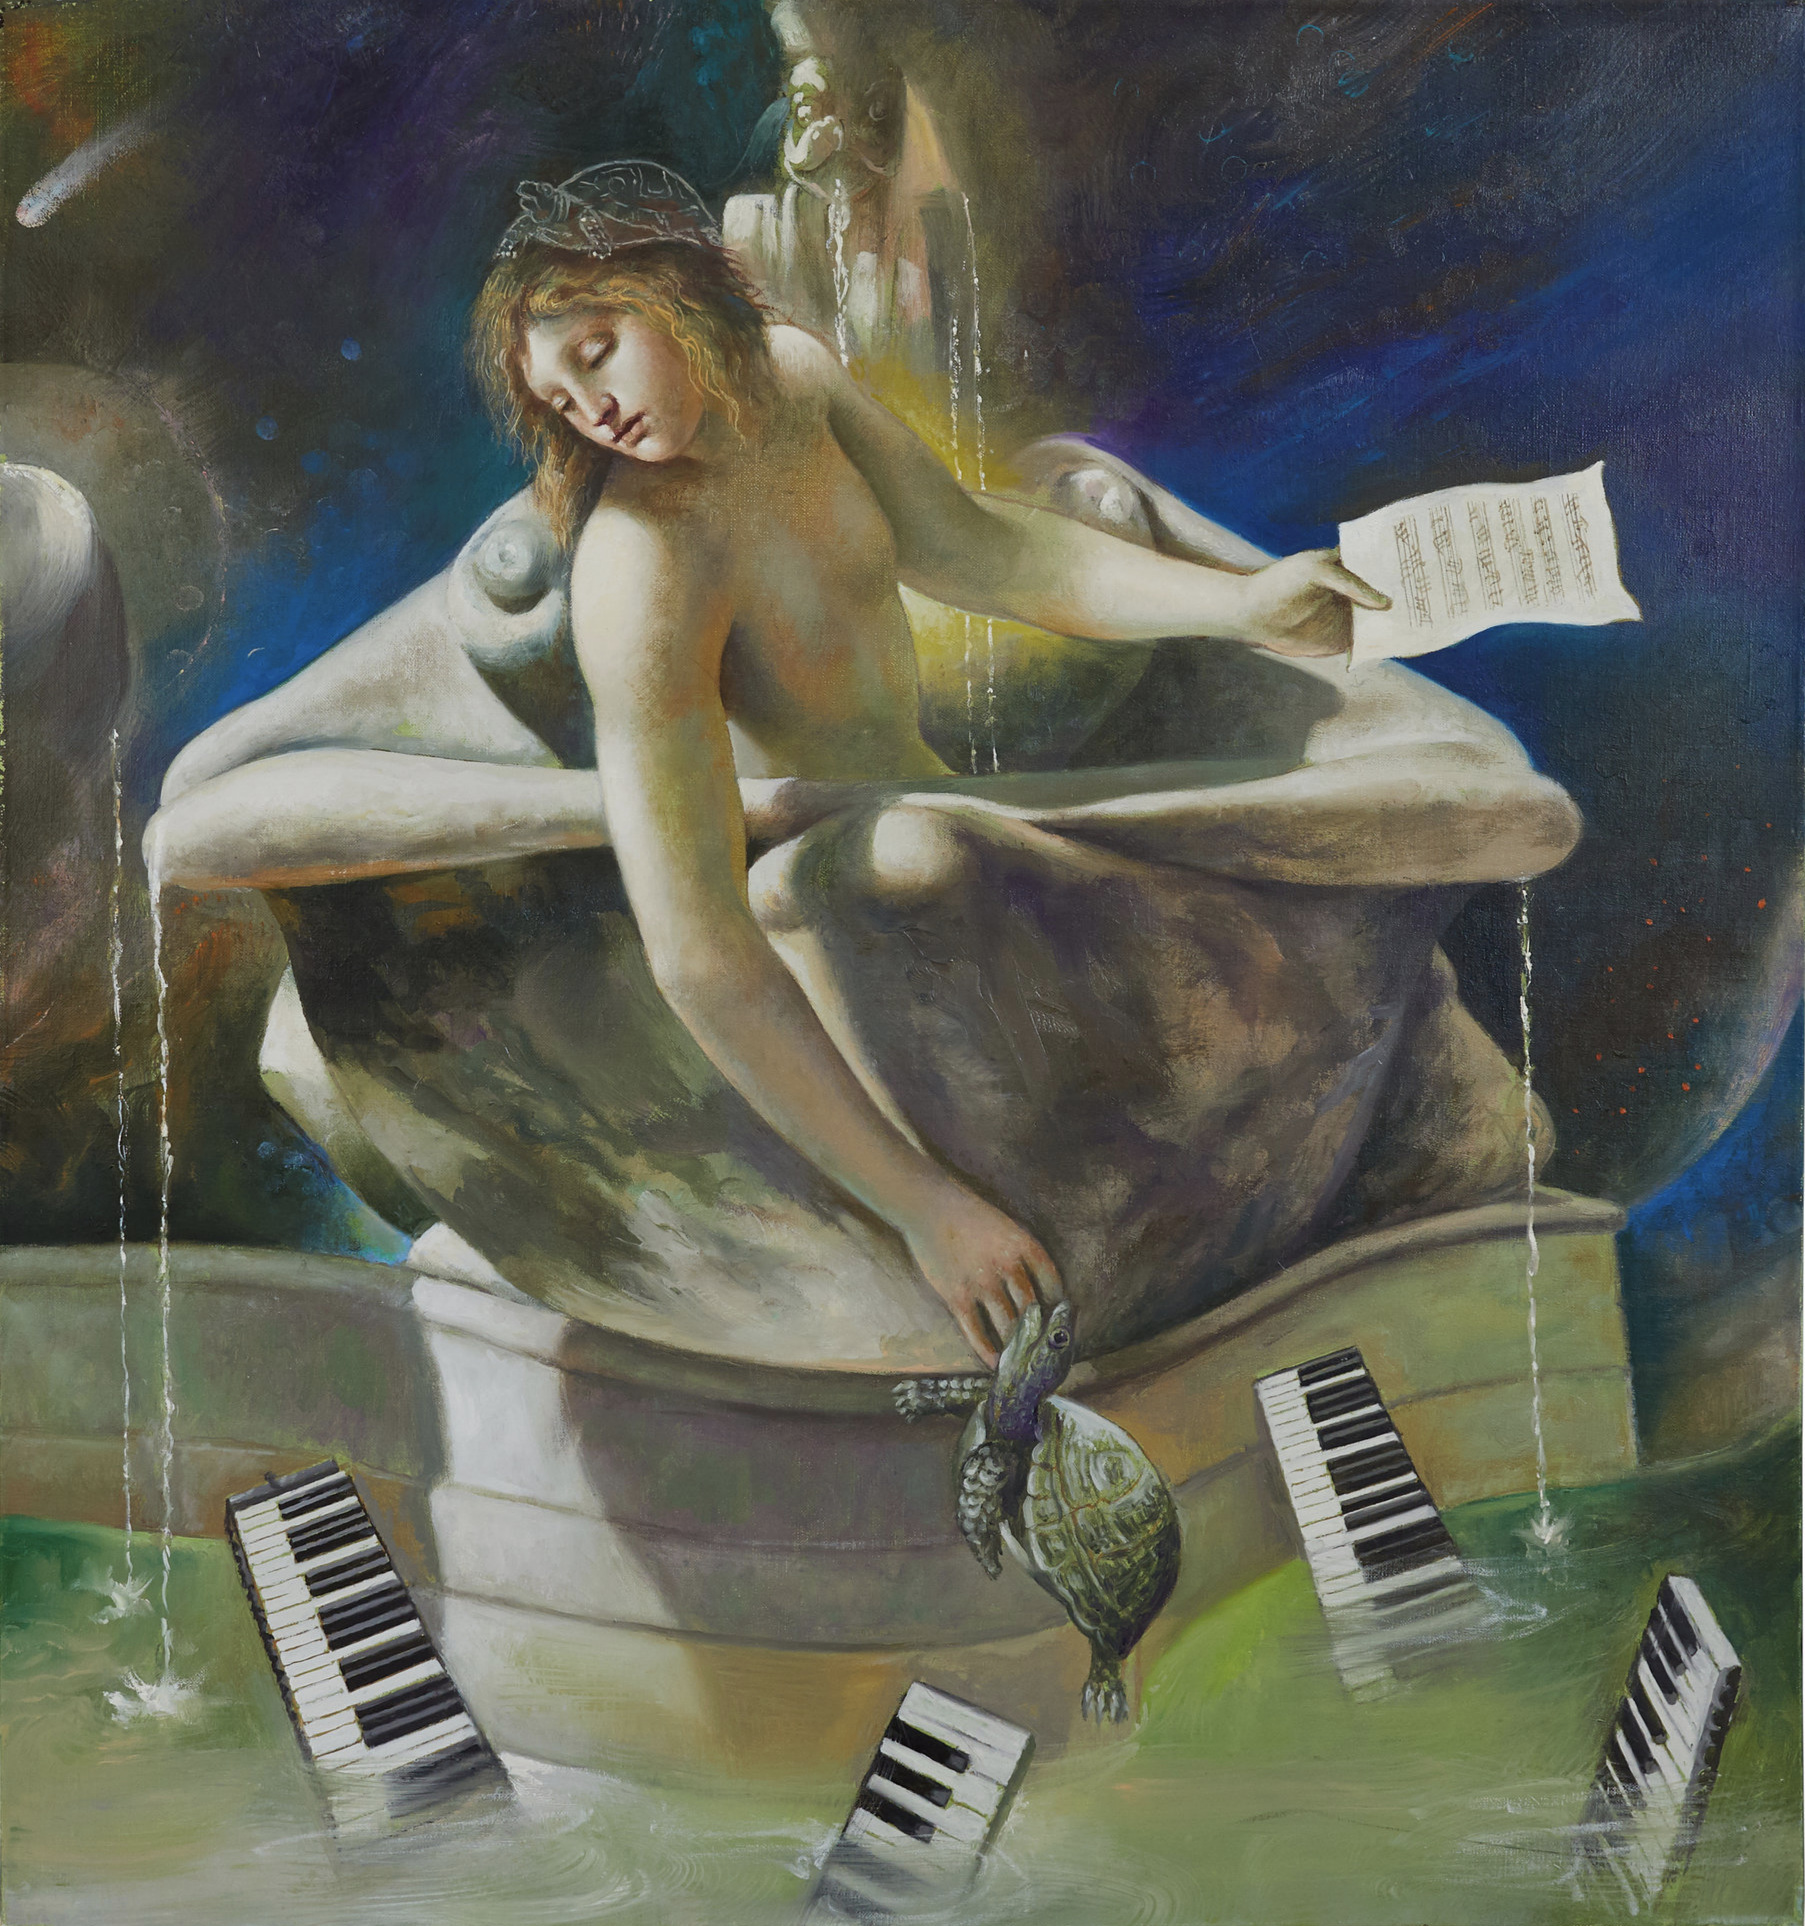 Allegoria (Allegory), 2011. Oil on canvas, 66 x 61 cm. New York, Collection of the Artist and Carol Lane, inv. no. 799.2011.P.jpg